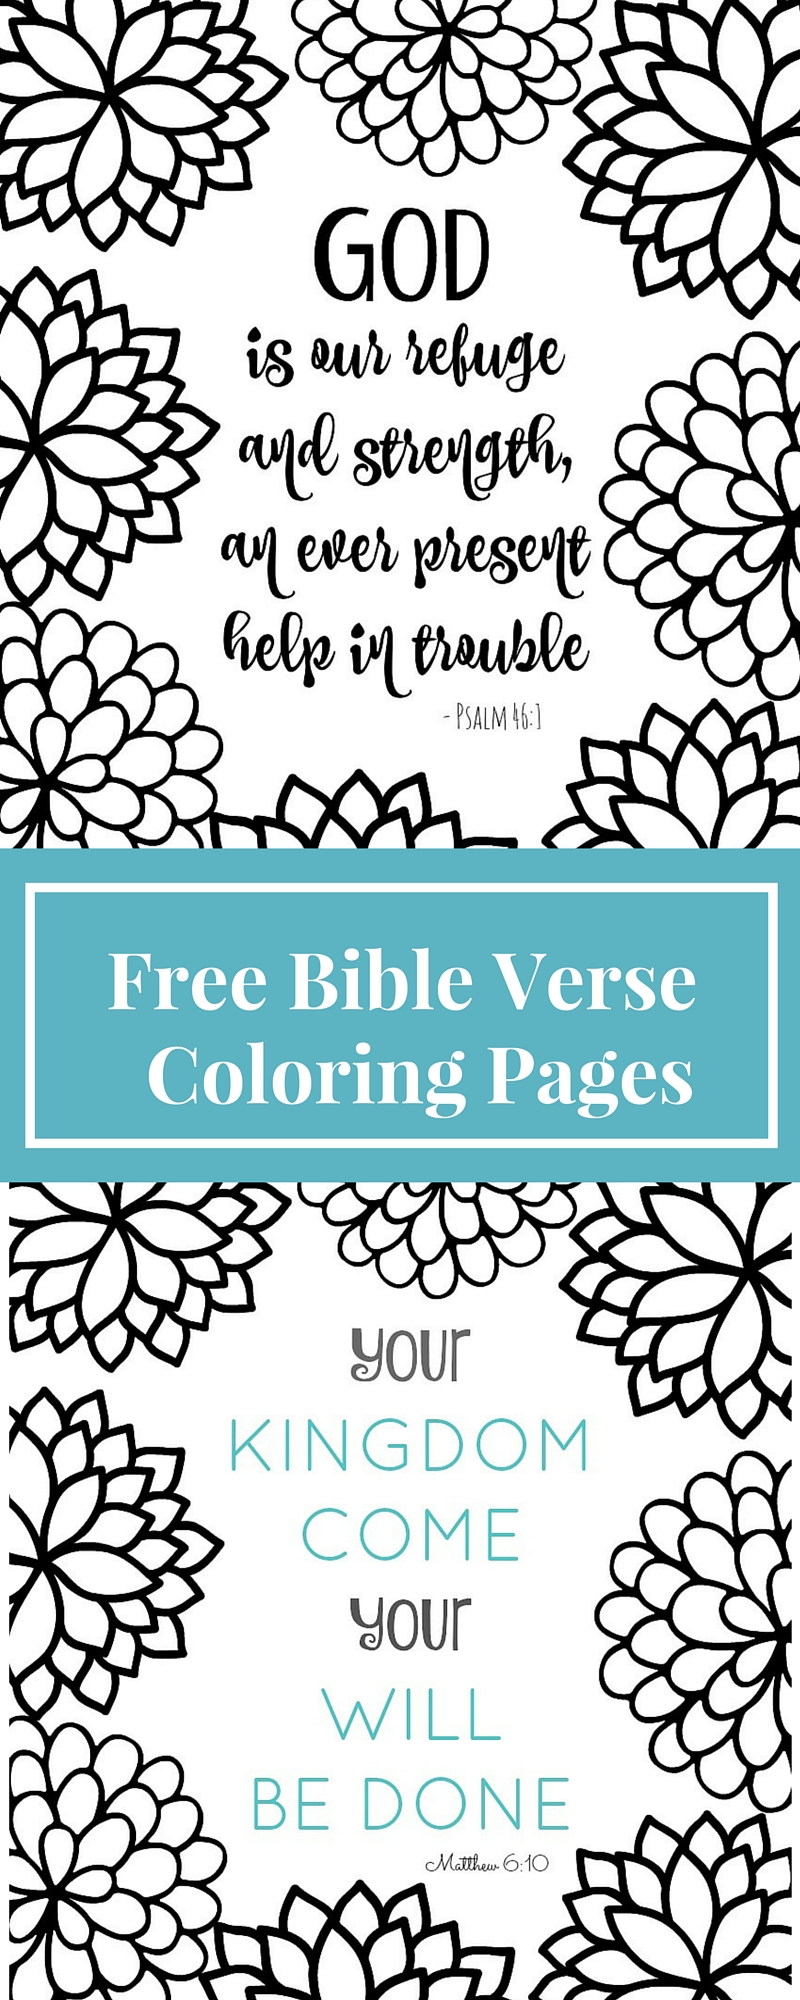 Printable coloring pages about the bible - Bible Verse Coloring Pages